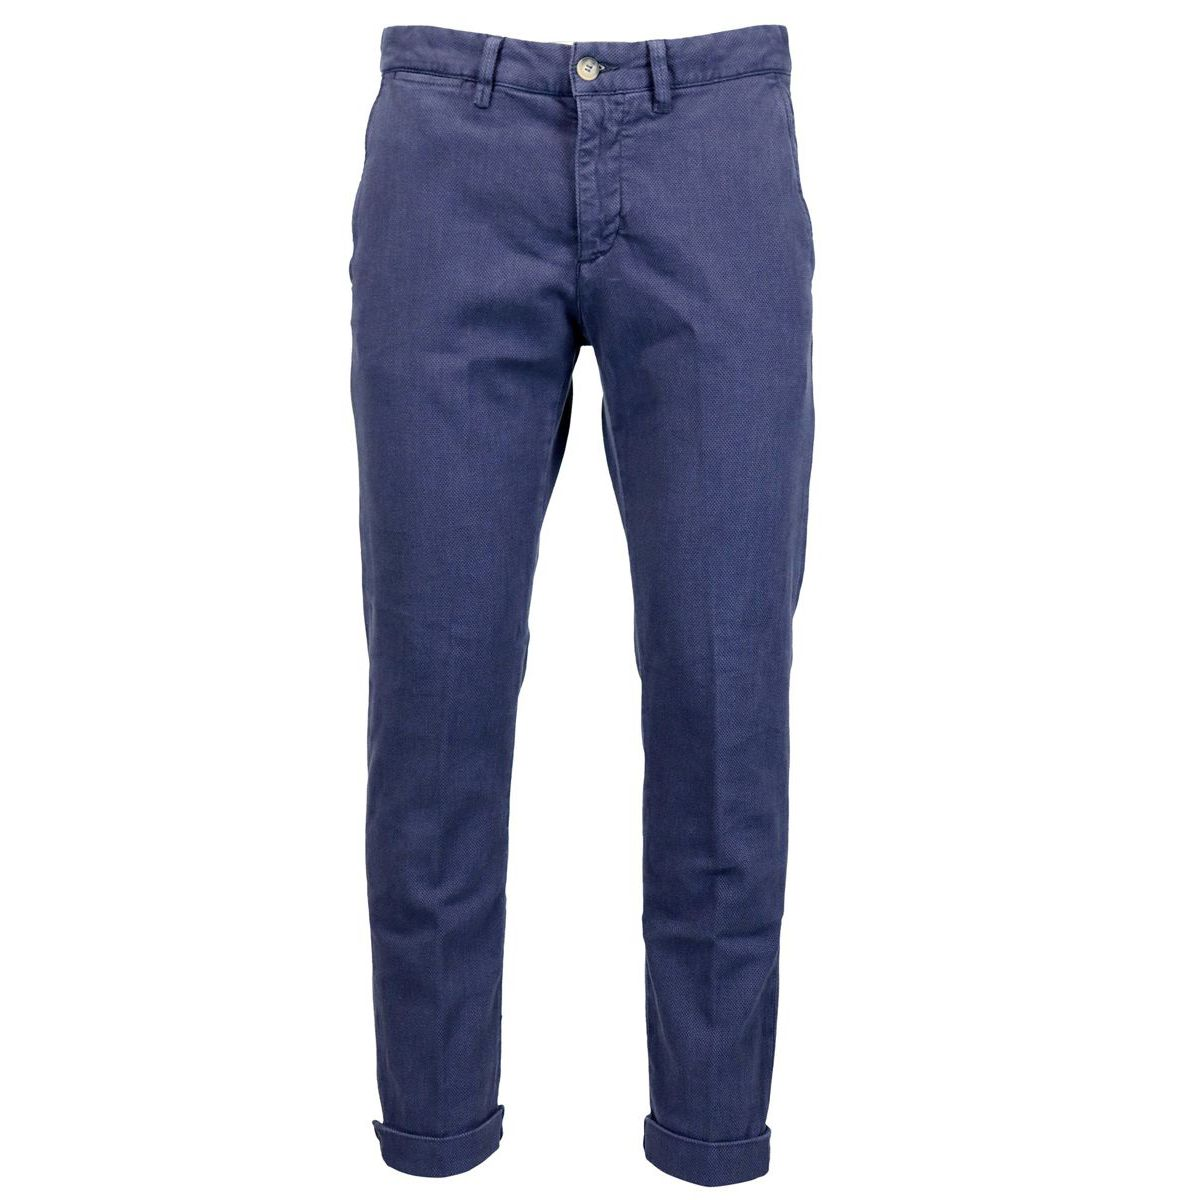 Micro patterned cotton trousers with america pockets Blue Jeckerson